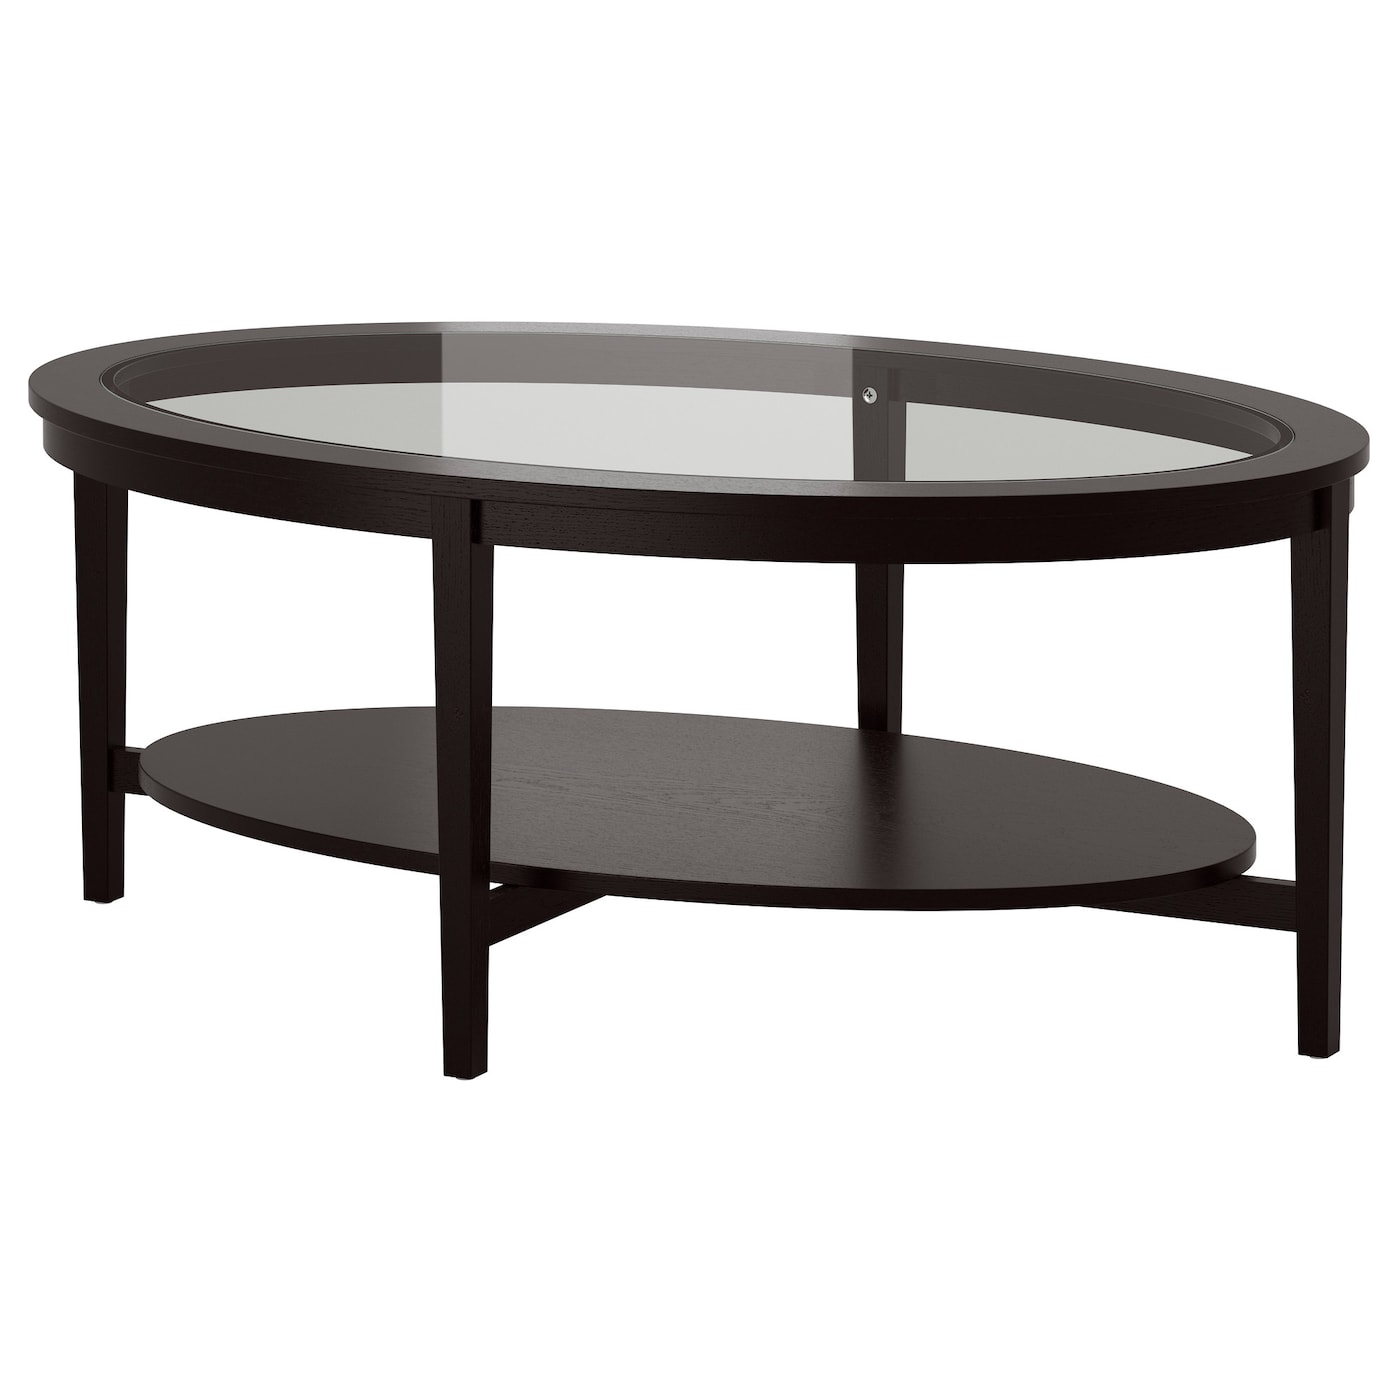 Http Www Ikea Com Gb En Products Tables Coffee Side Tables Malmsta Coffee Table Black Brown Art 60261184